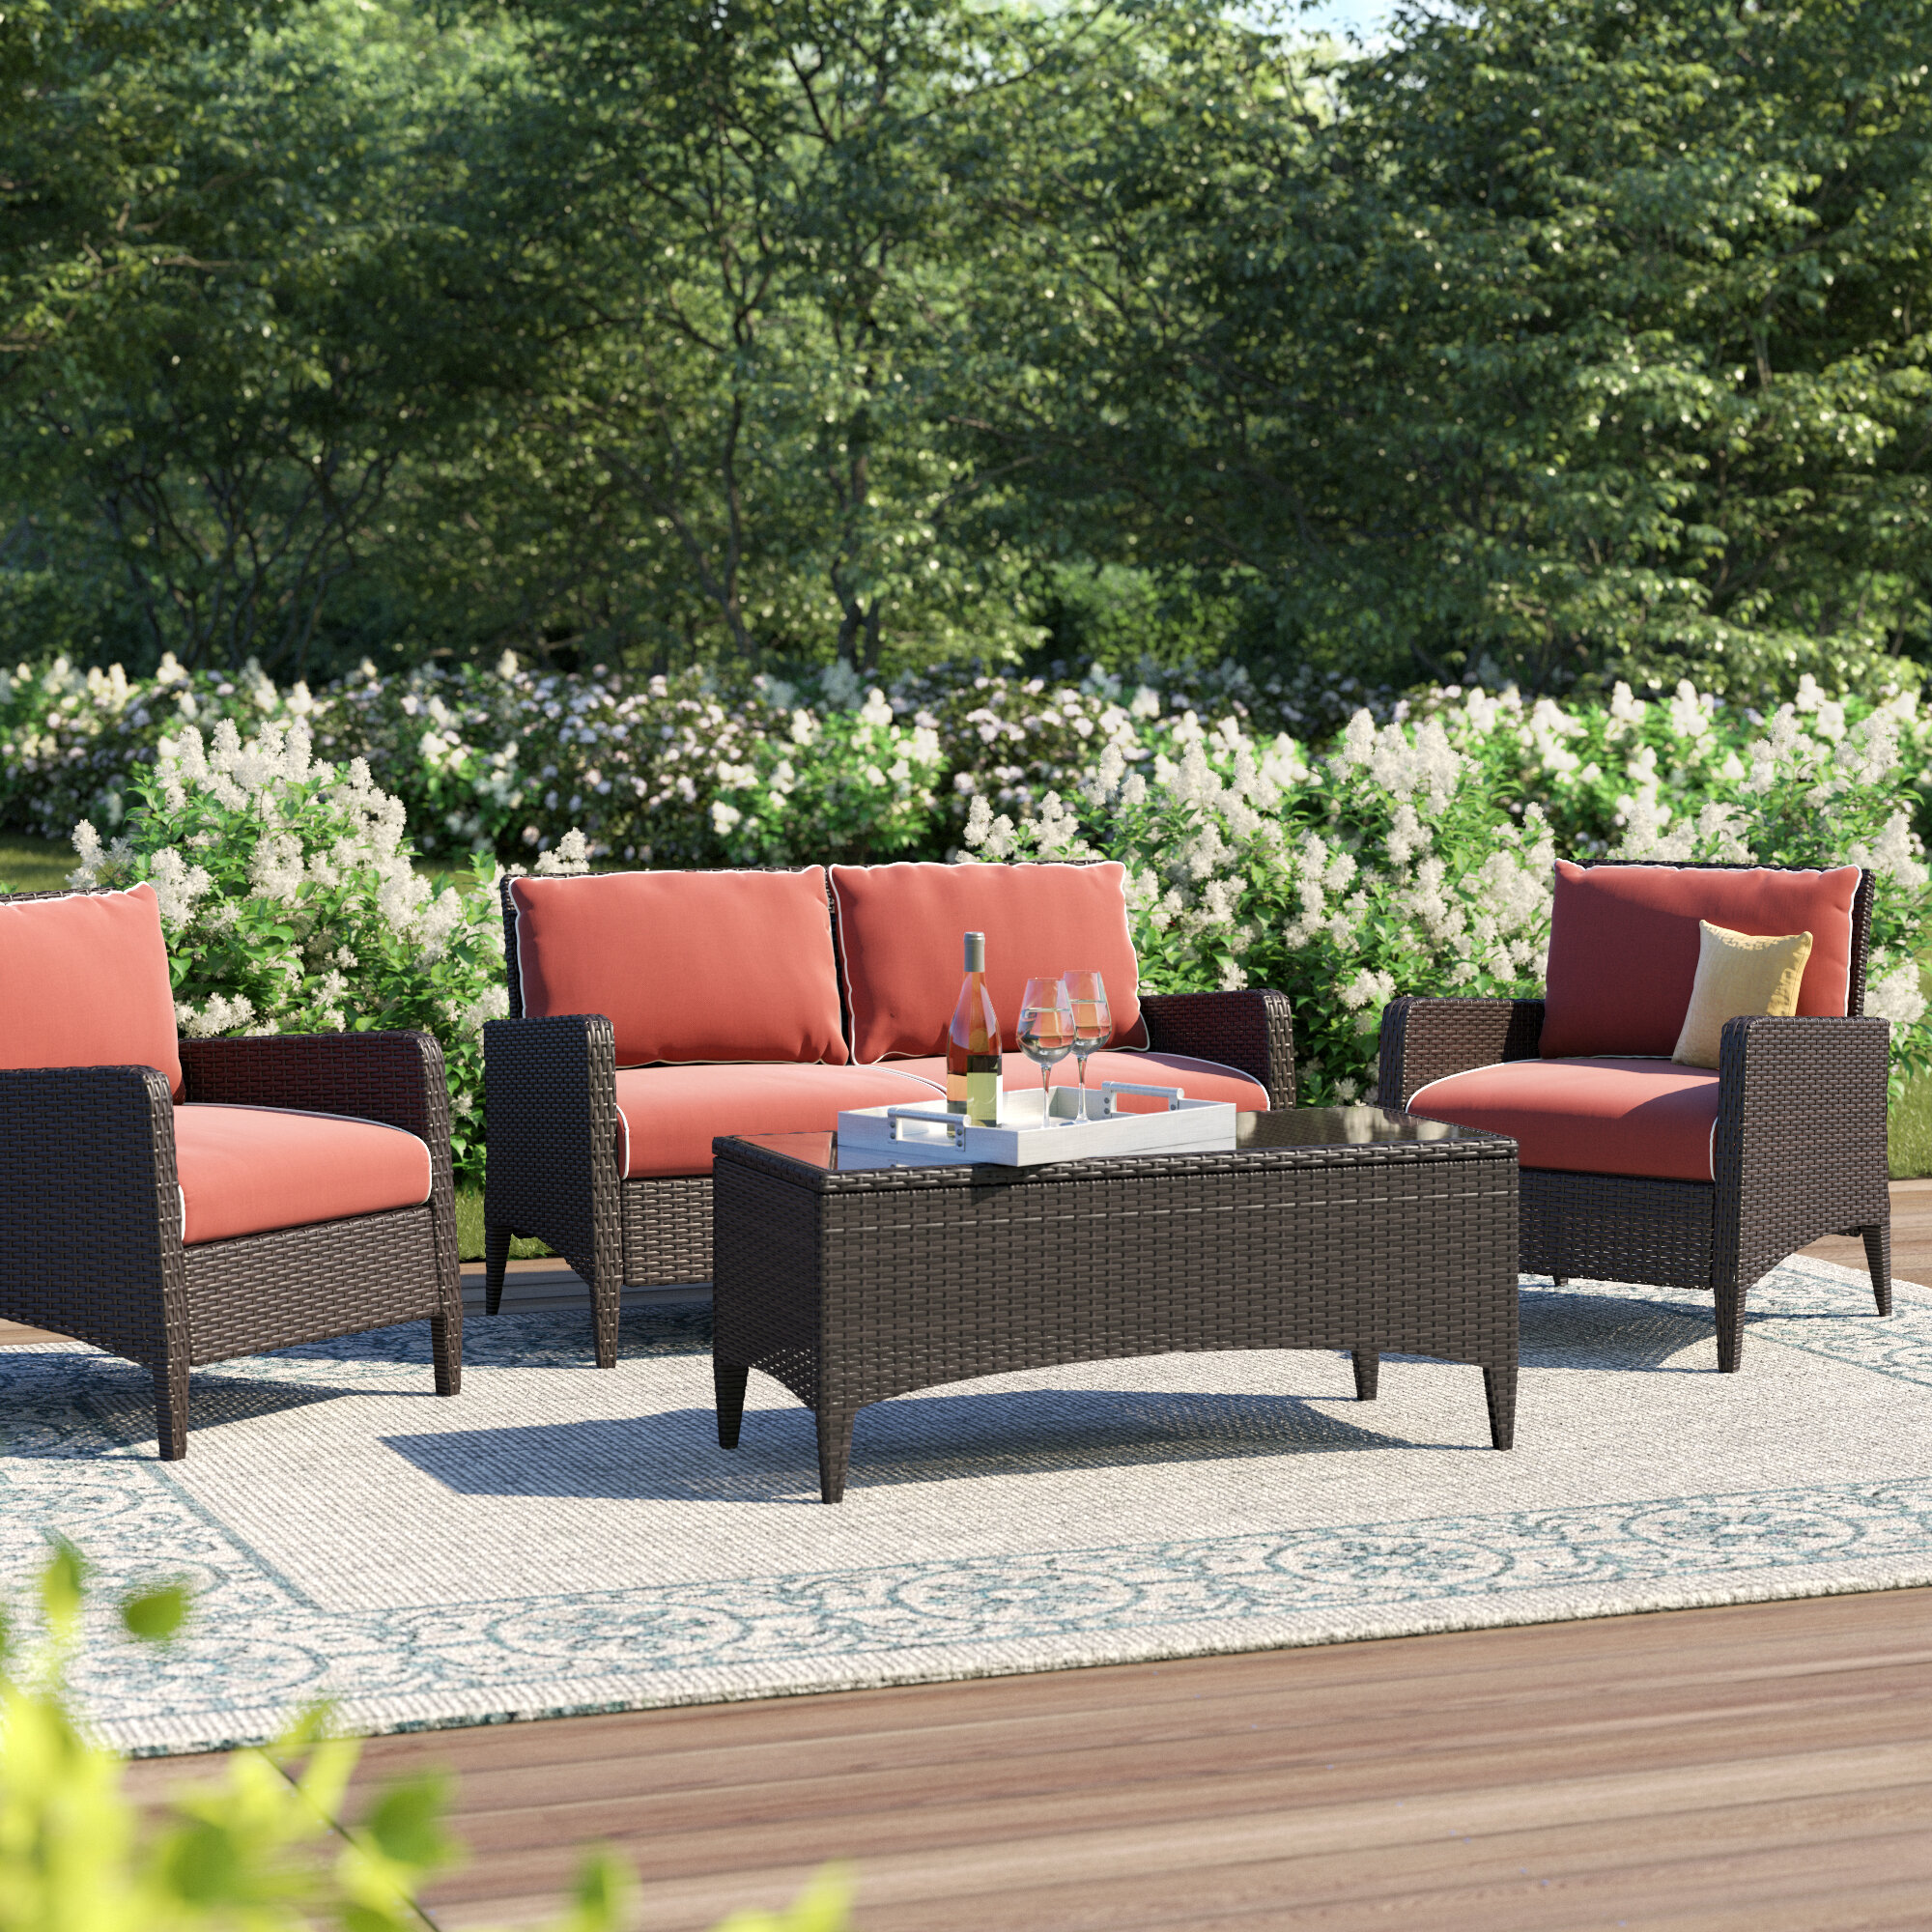 3 4 Person Global Inspired Patio Conversation Sets You Ll Love In 2021 Wayfair